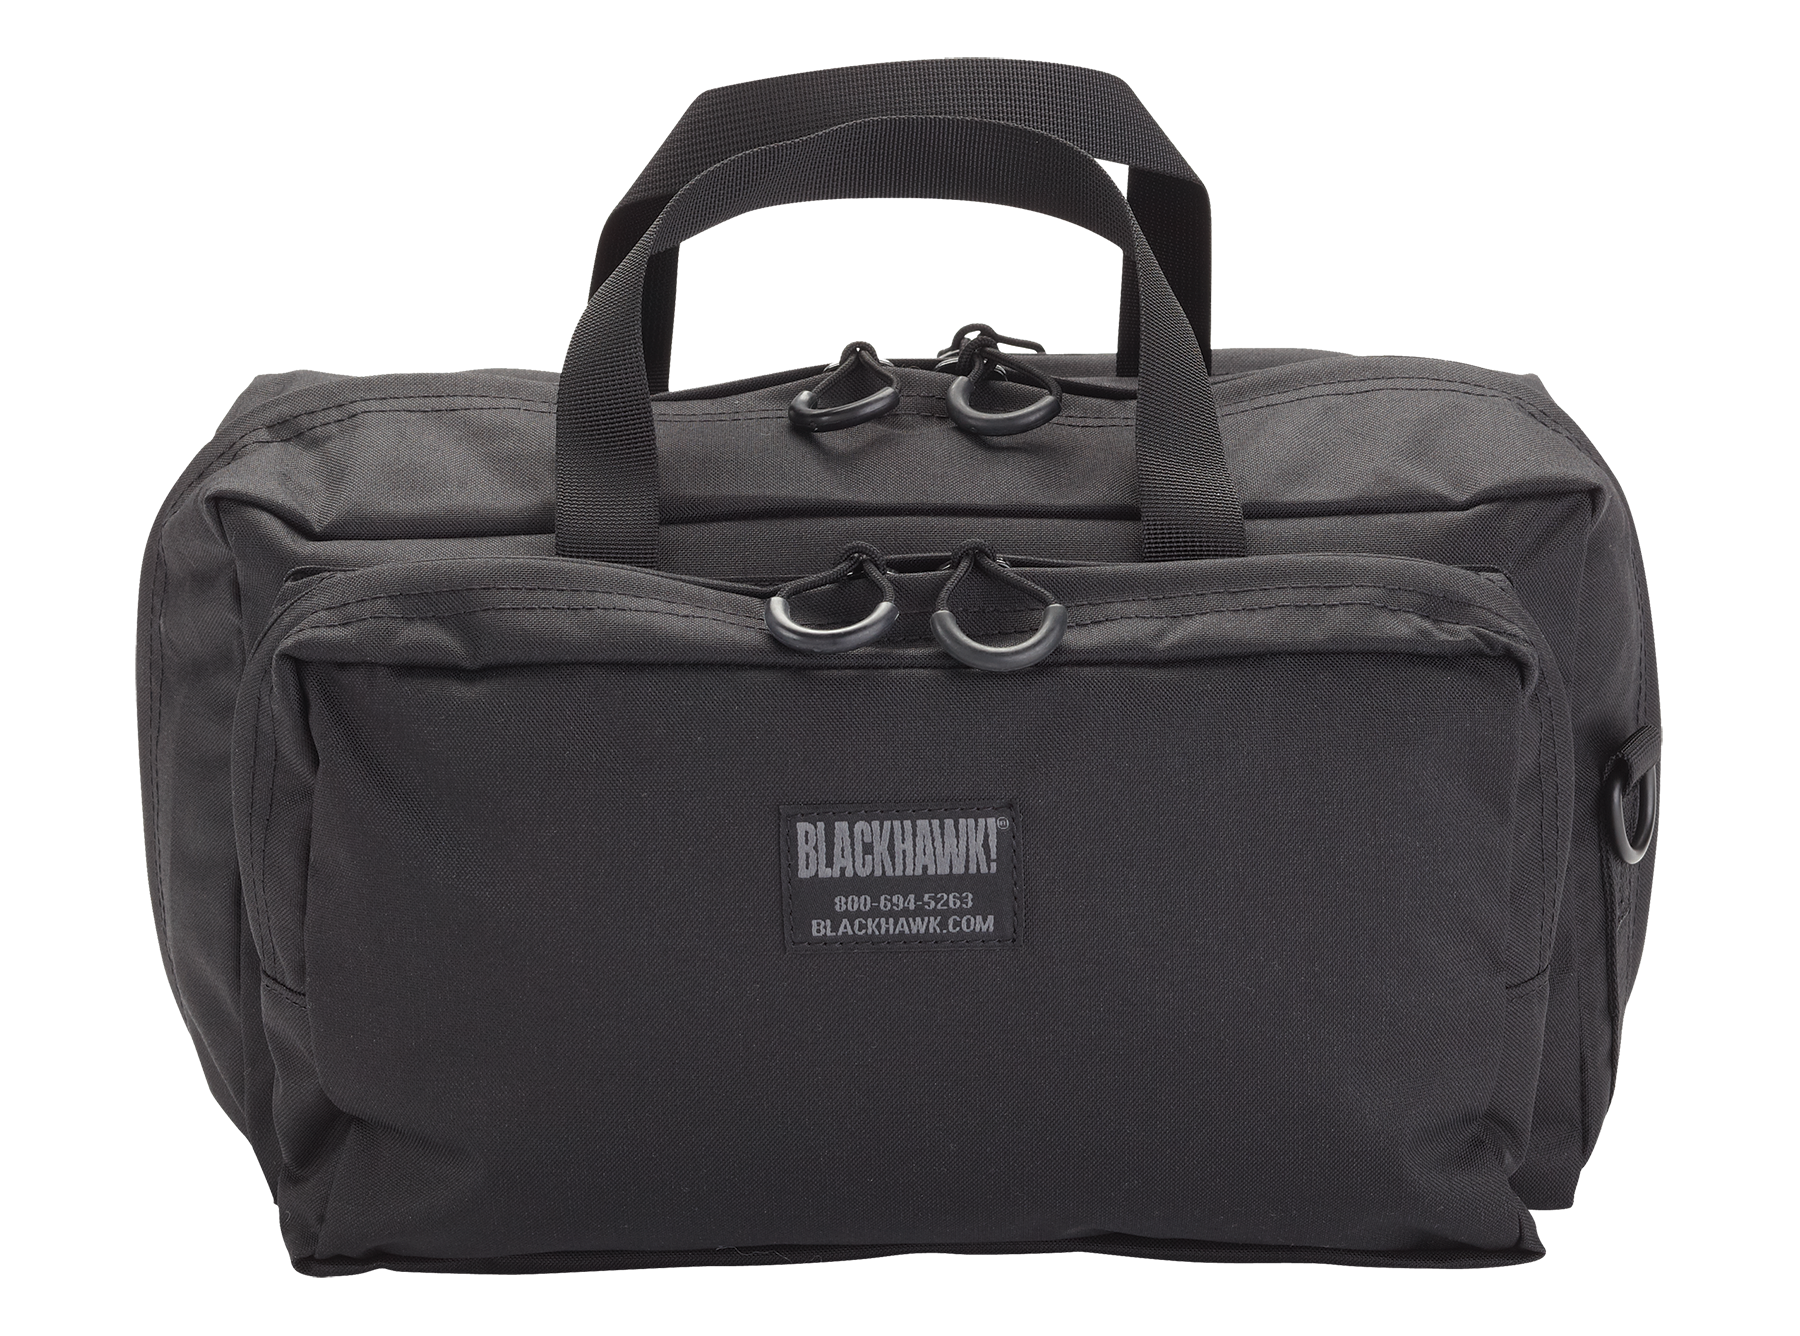 Blackhawk 20MOB2BK Mobile Operations Tactical Bag Accessory Case Transport Bag 1000D Nylon 24